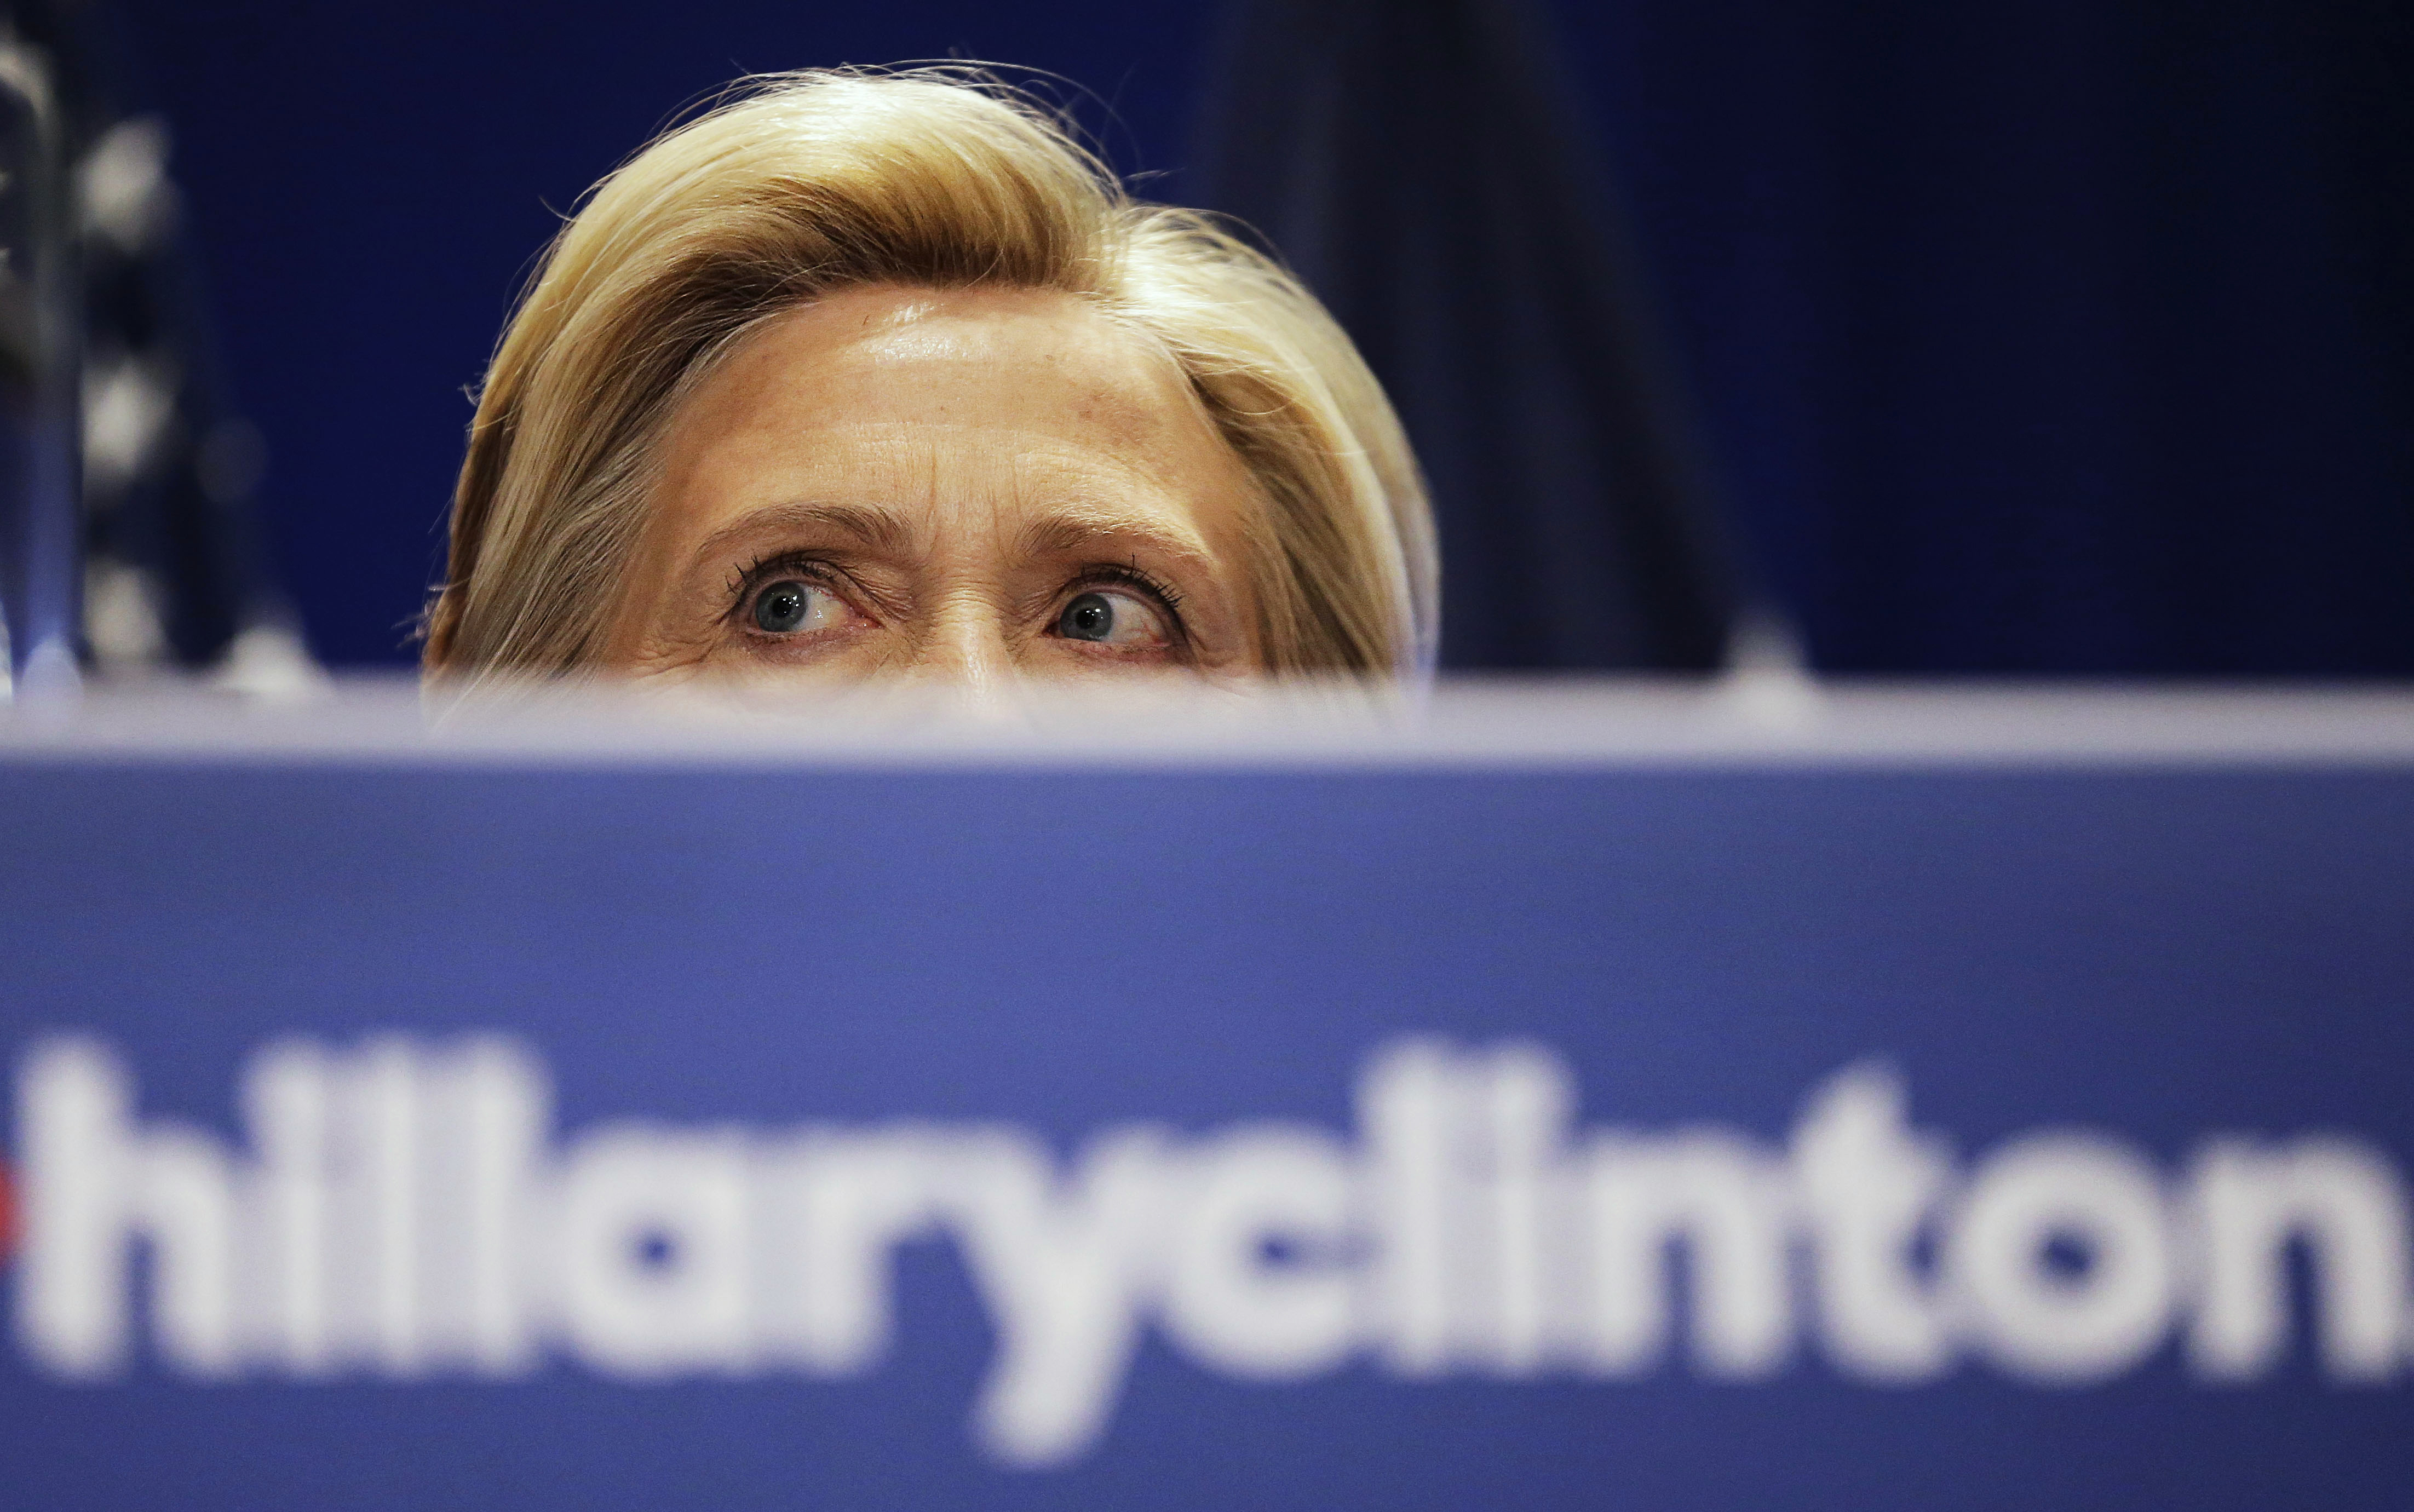 Gop Candidates Cancel Events After Sc Shooting Not Hillary Washington Times